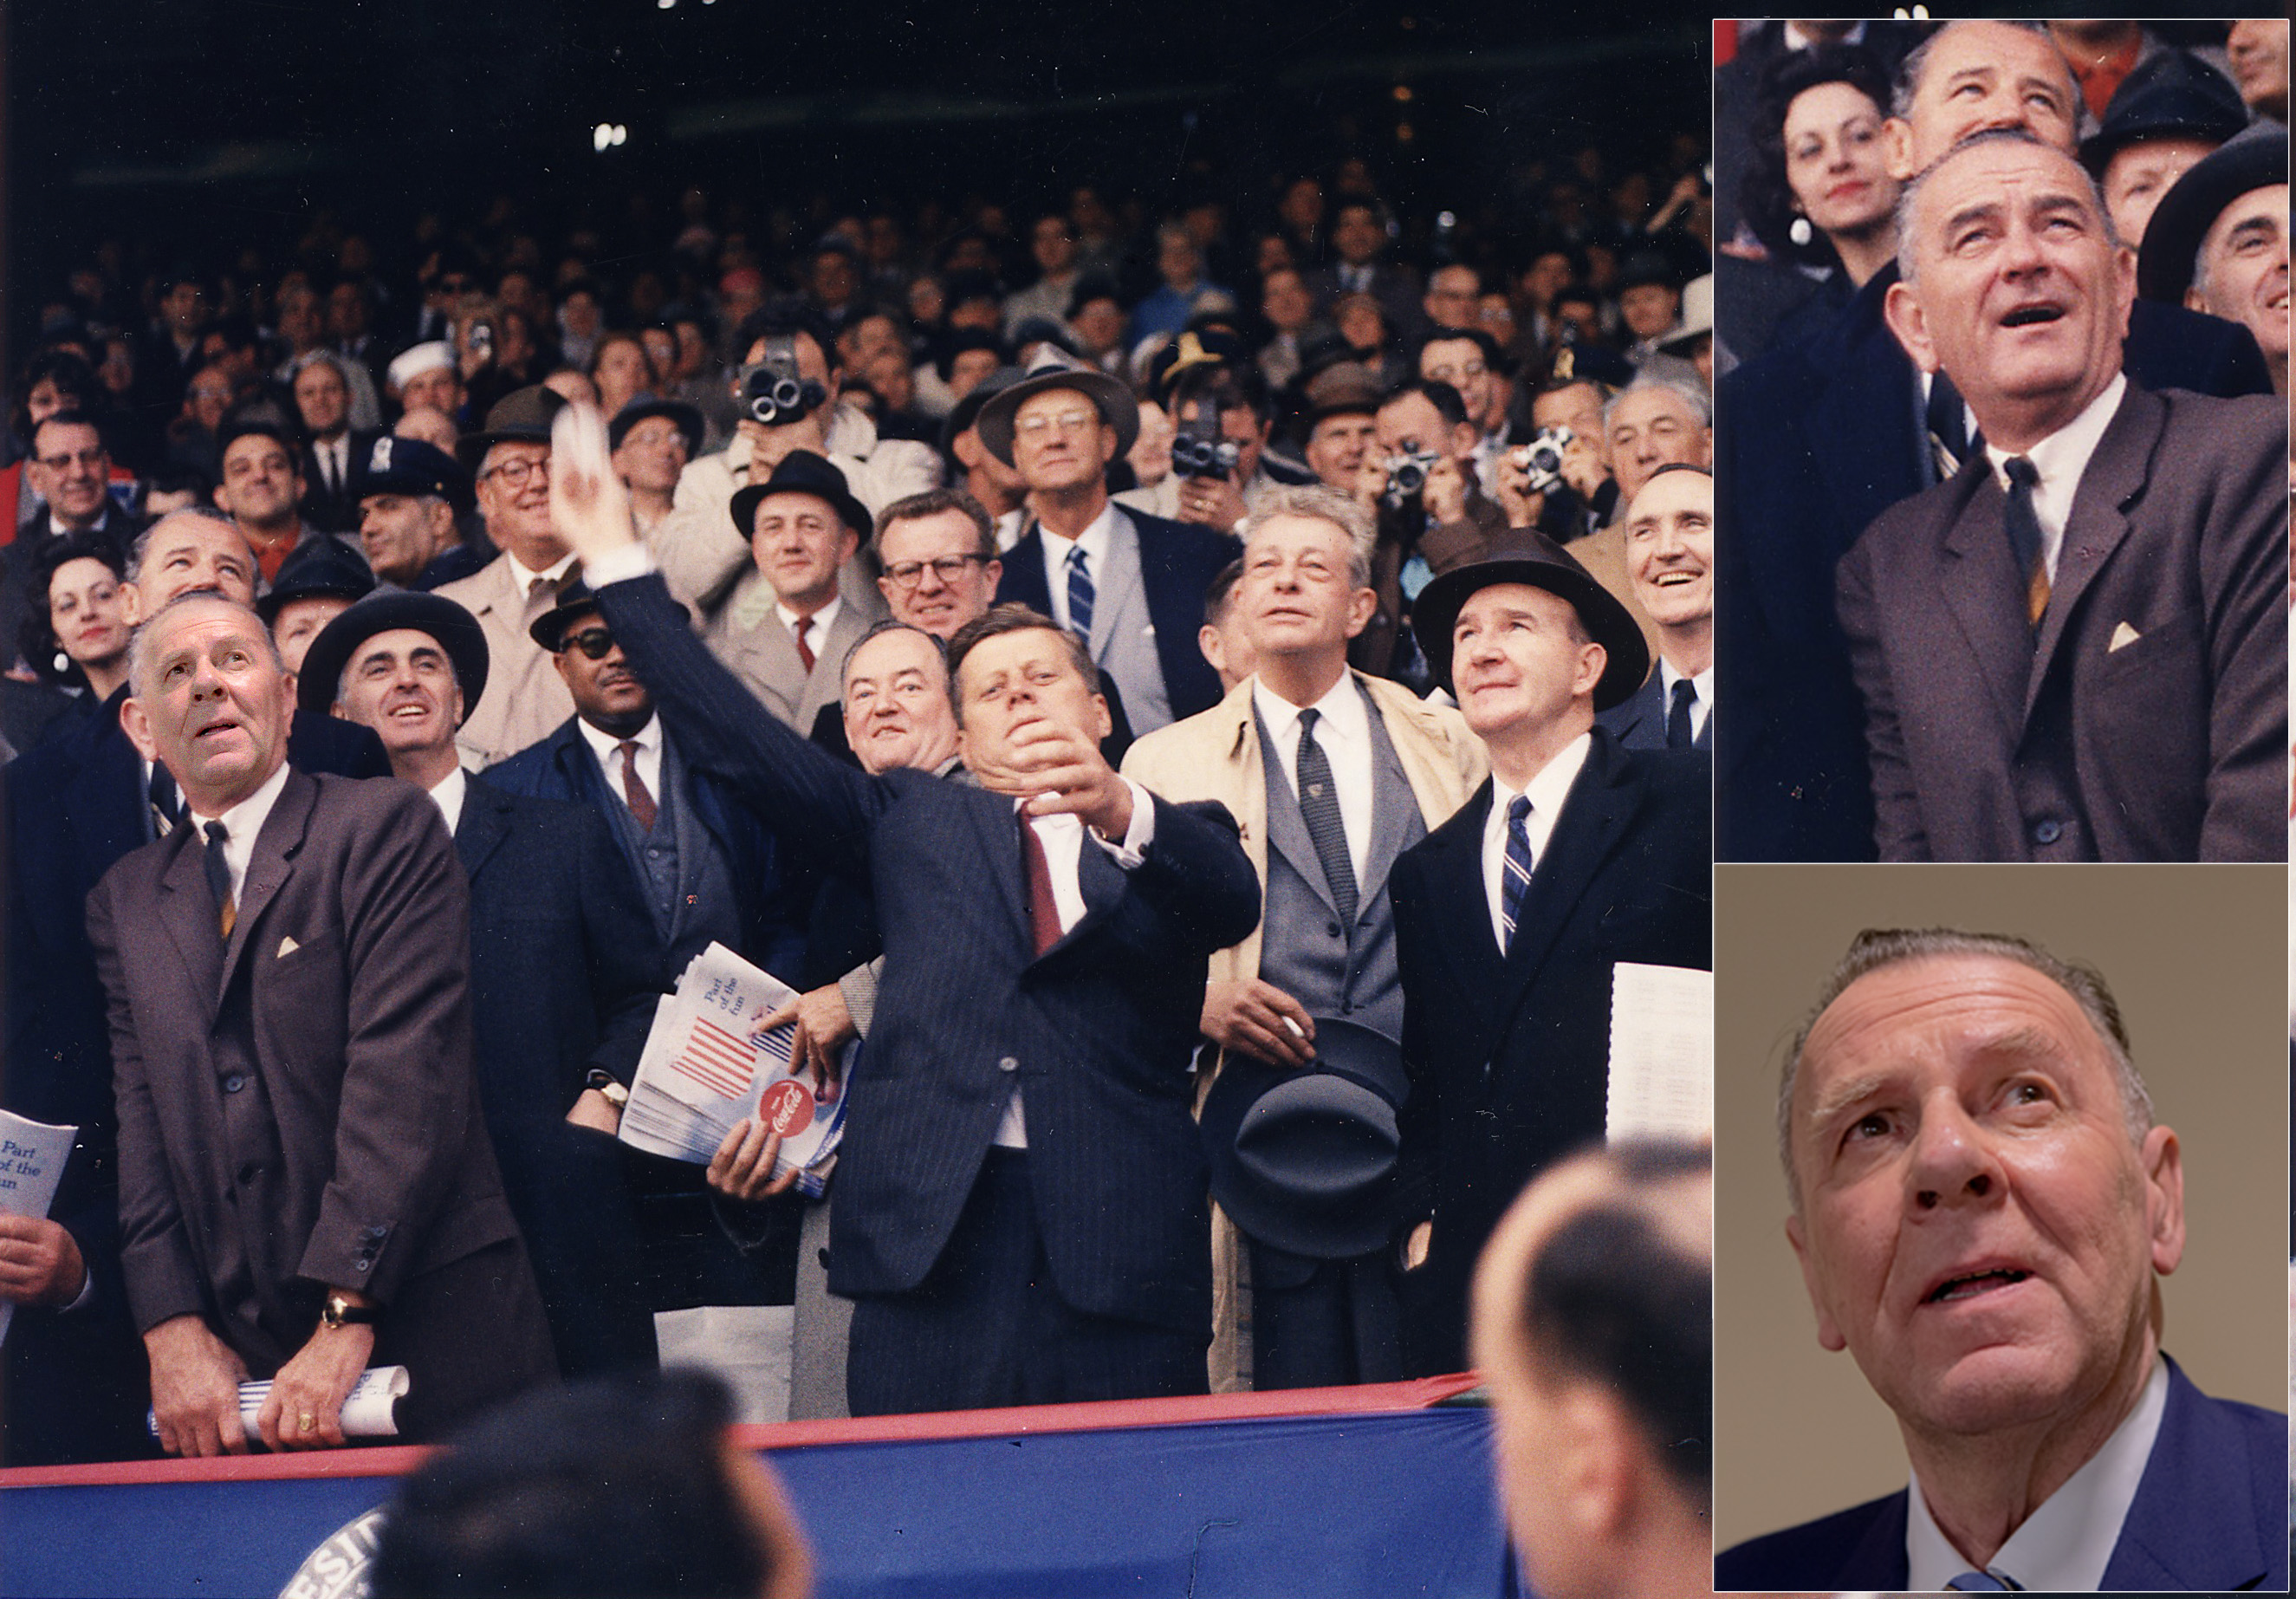 Retouching_aaaOpening_Day_of_1961_Baseball_Season._President_Kennedy_throws_out_first_ball._first_row_Vice_President_Johnson..._-_NARA_-_194197_JJ